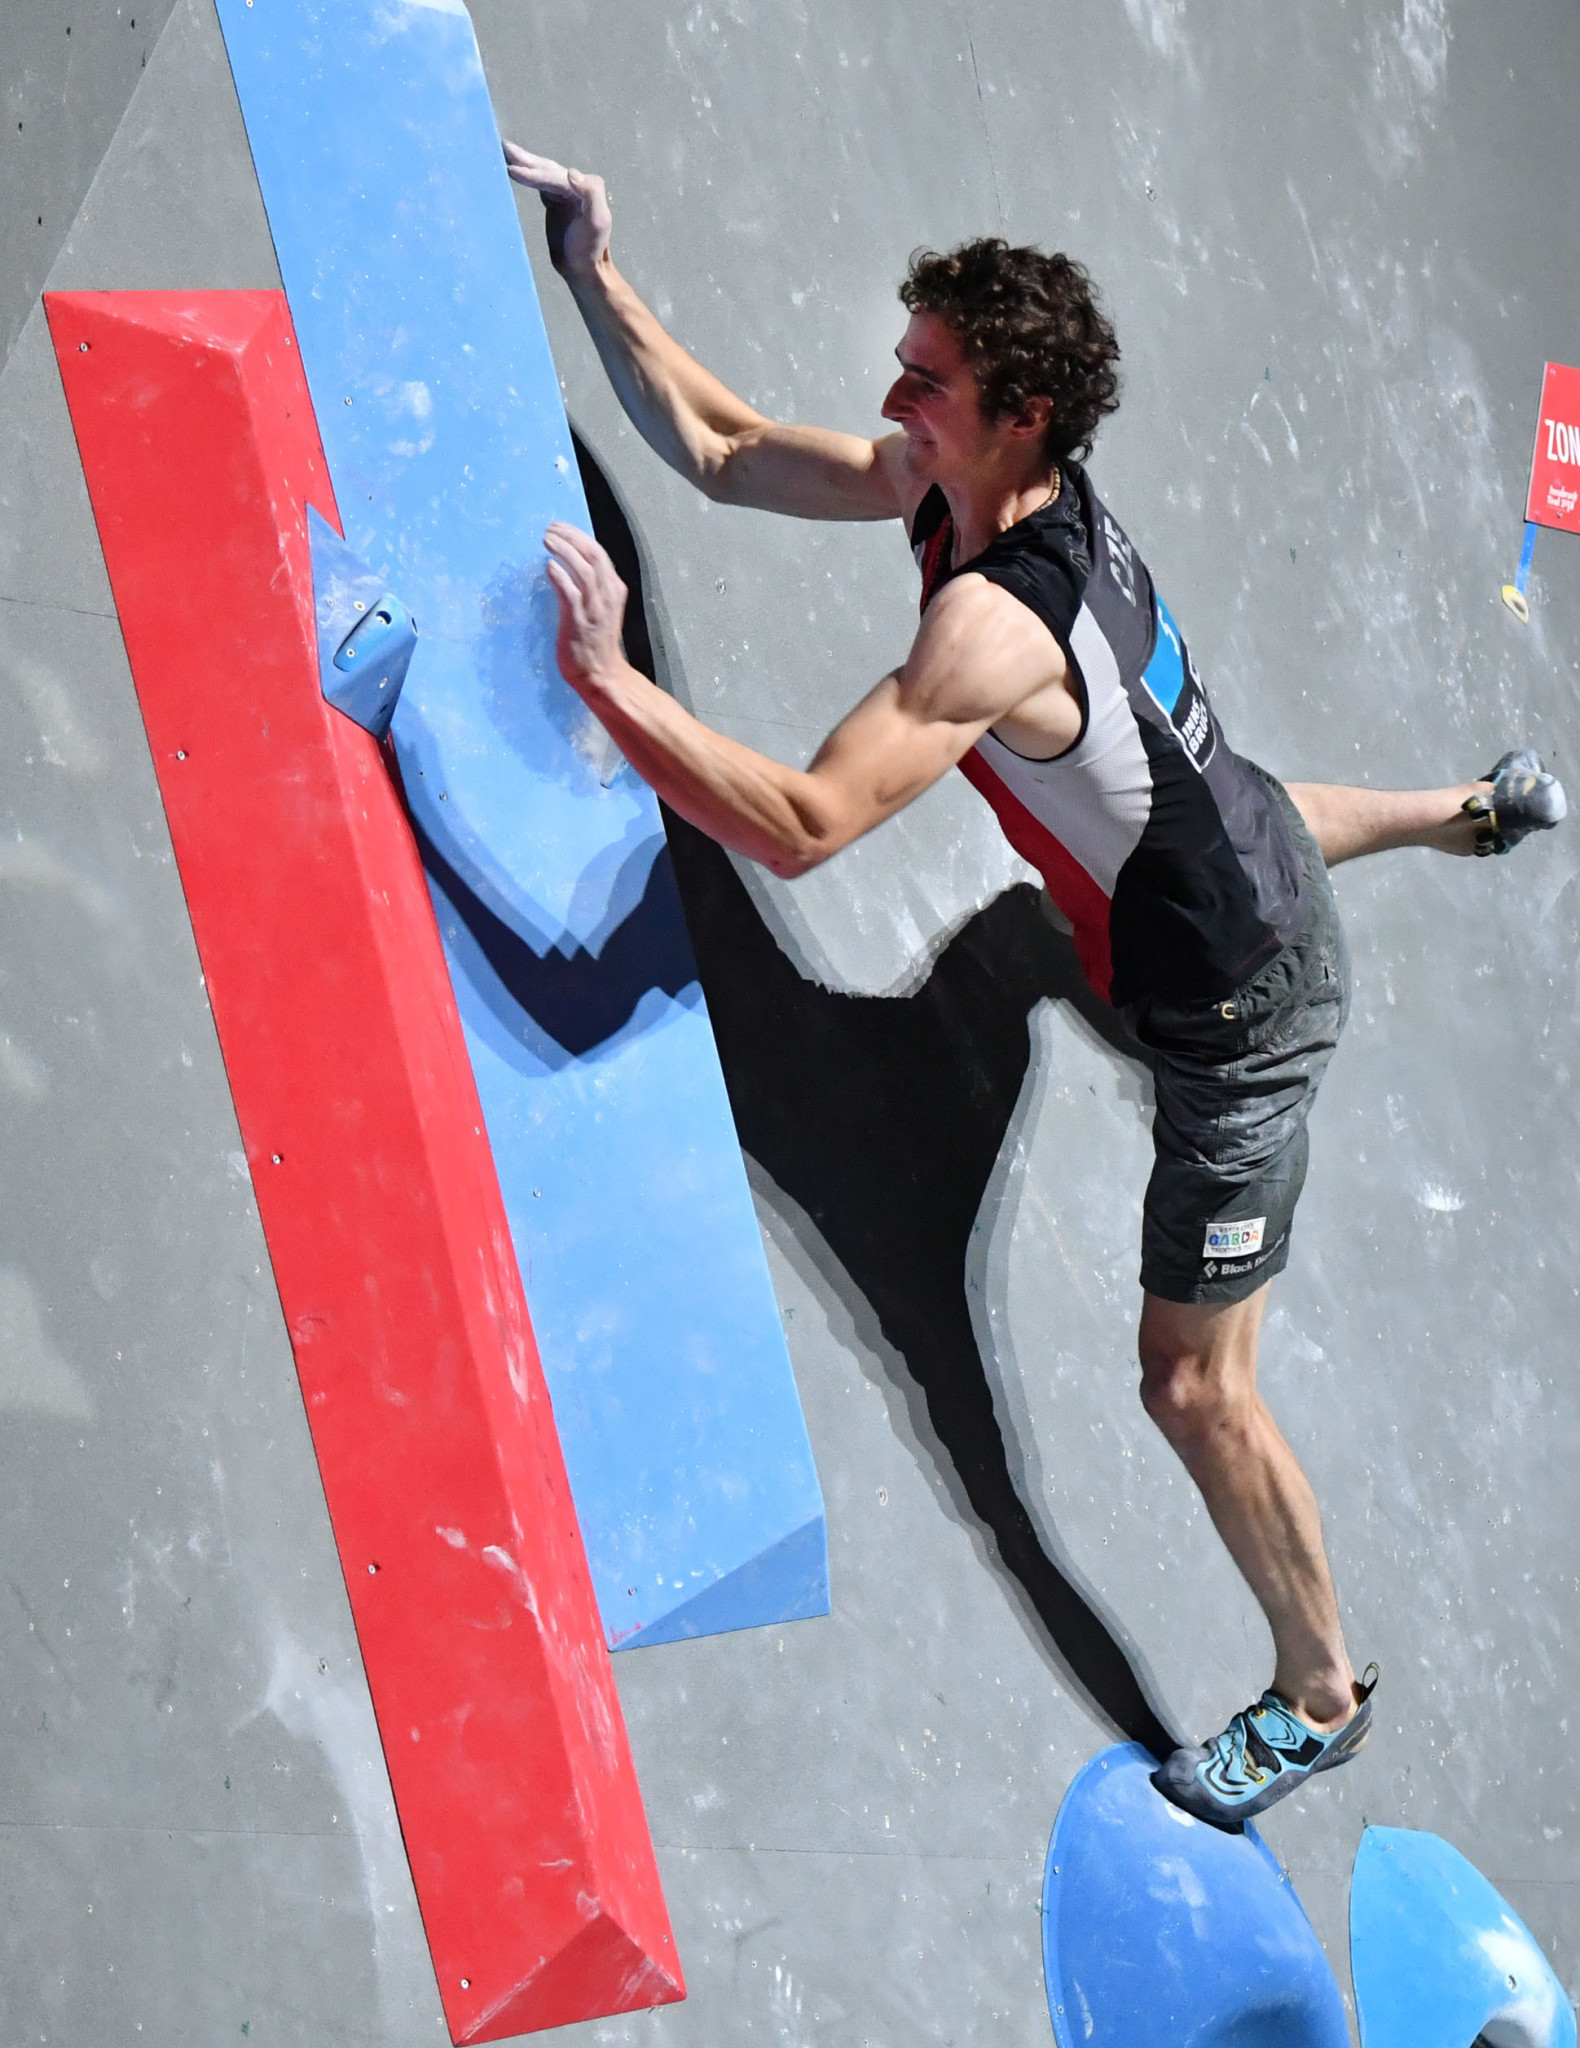 The Czech Republic's multiple world champion Adam Ondra topped men's qualifying ahead of tomorrow's IFSC Bouldering World Cup finals in Wujiang, China ©Getty Images